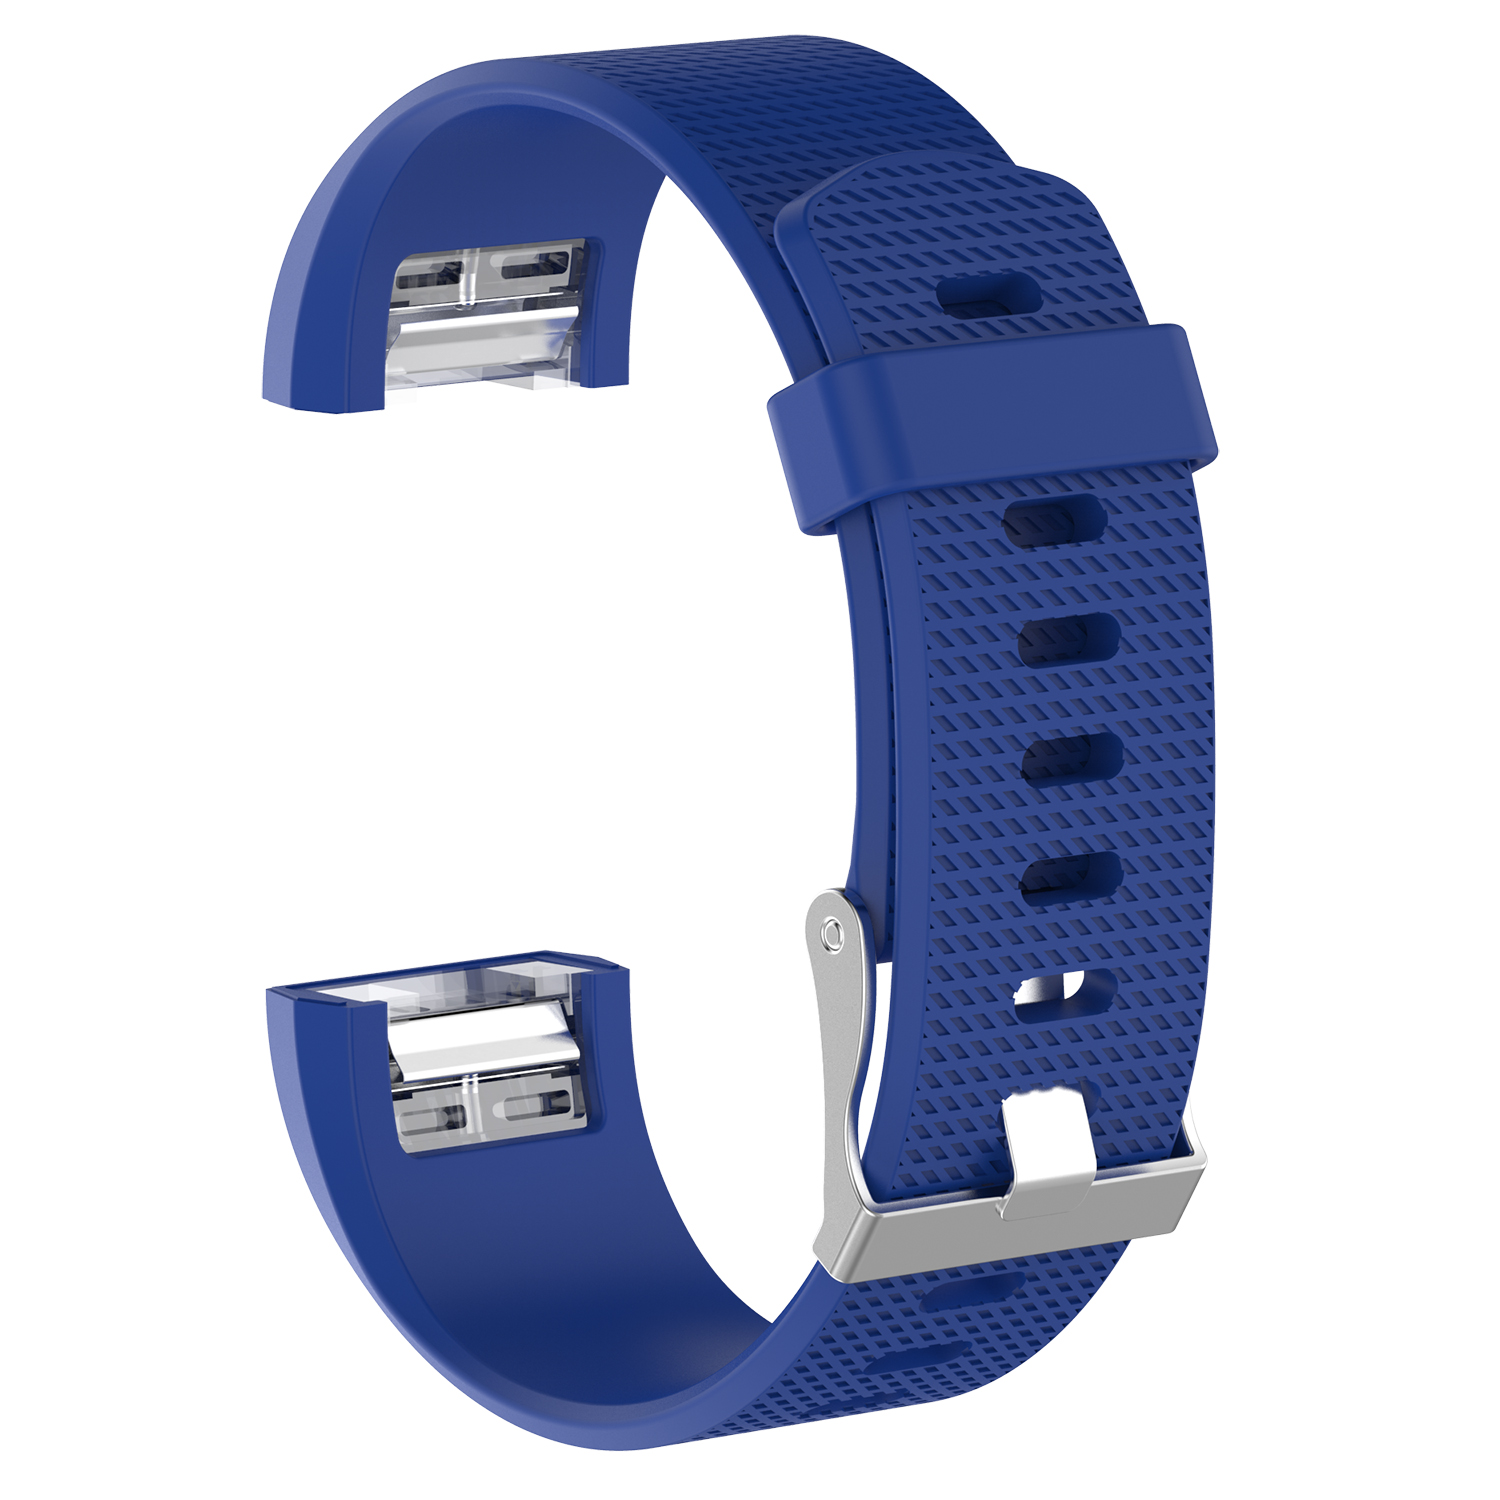 Replacement-Silicone-Wristband-Watch-Strap-Bands-Bracelet-For-Fitbit-Charge-2 thumbnail 66